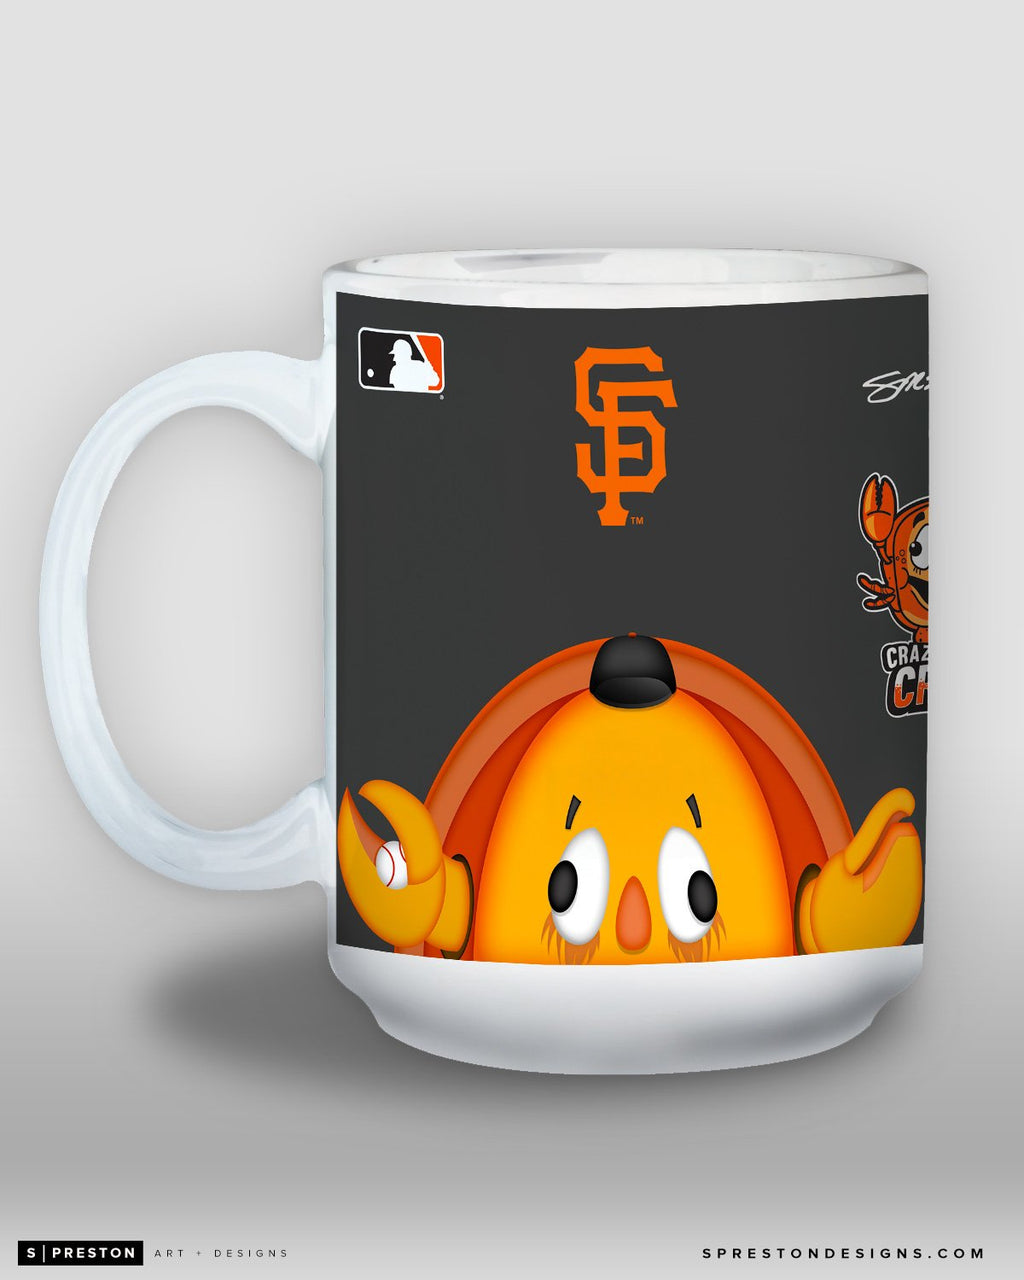 Minimalist Crazy Crab Coffee Mug - MLB Licensed - San Francisco Giants Mascot